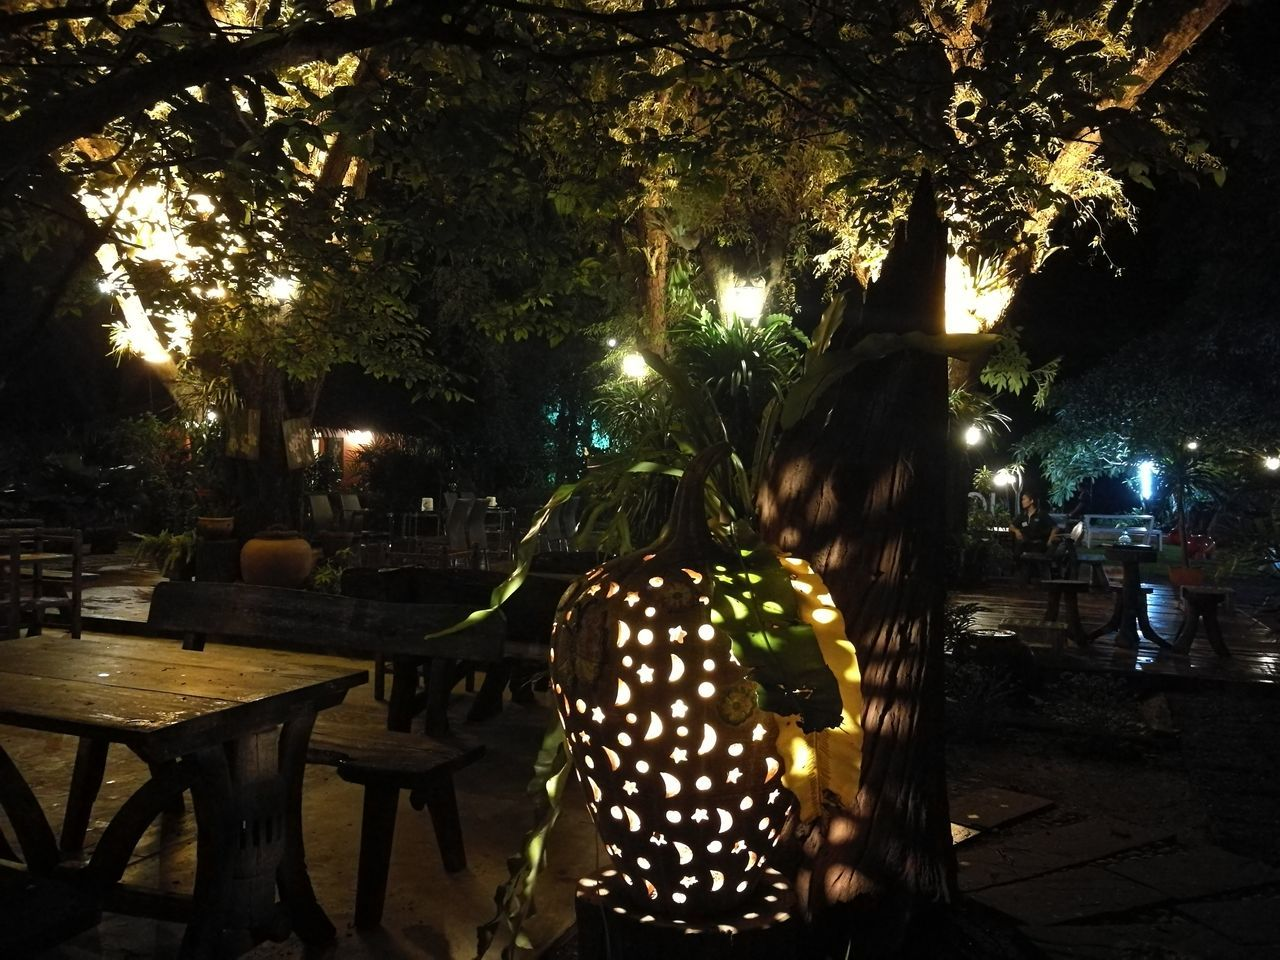 tree, night, illuminated, table, outdoors, growth, christmas lights, real people, one person, nature, people